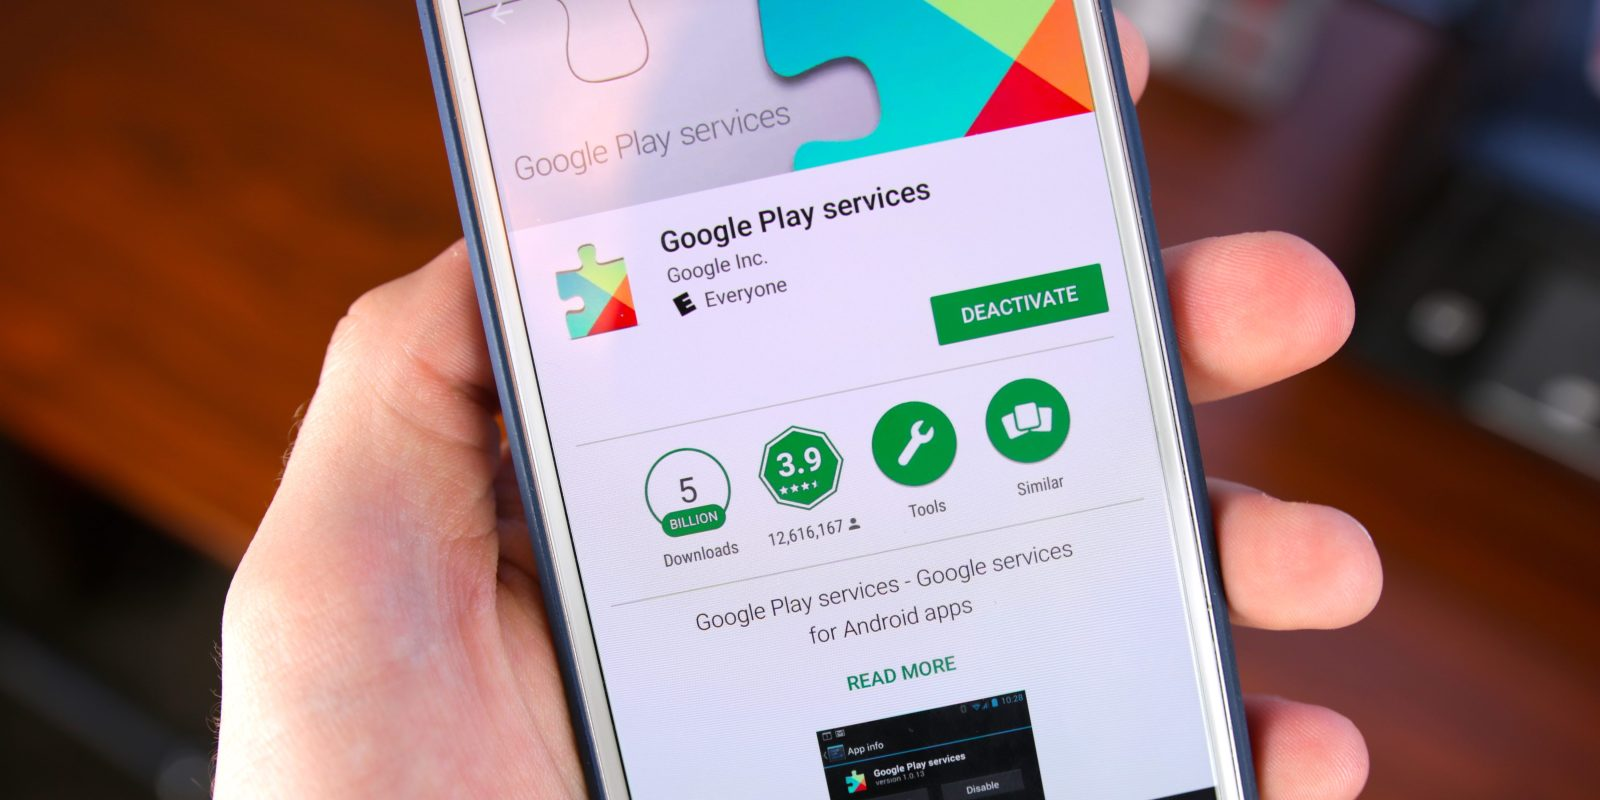 How to update Google Play Services on Android - 9to5Google